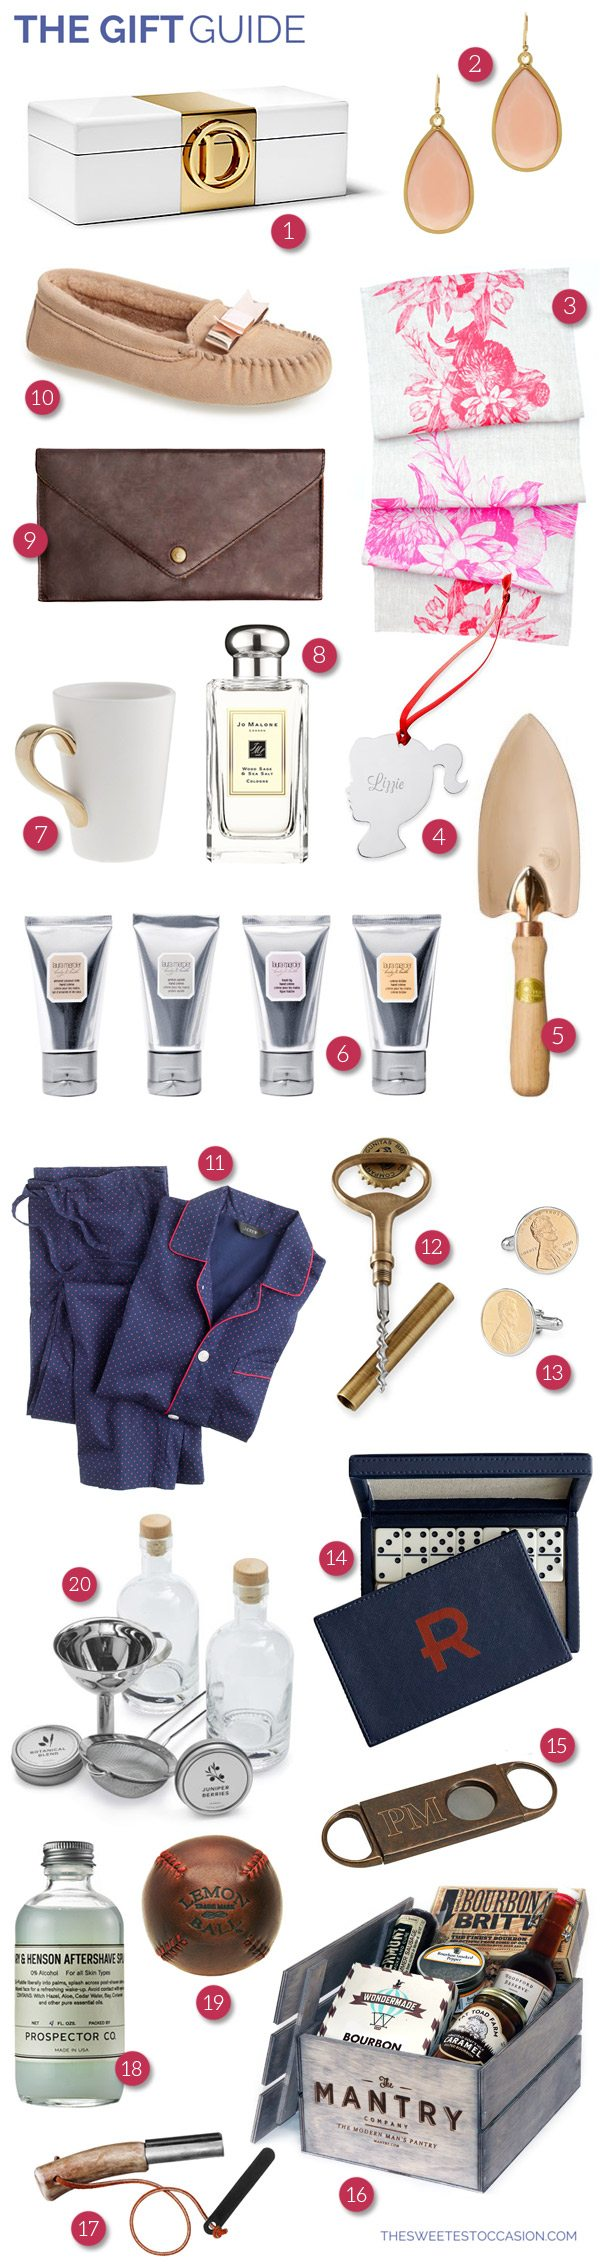 The Gift Guide: Gifts for Inlaws - The Sweetest Occasion